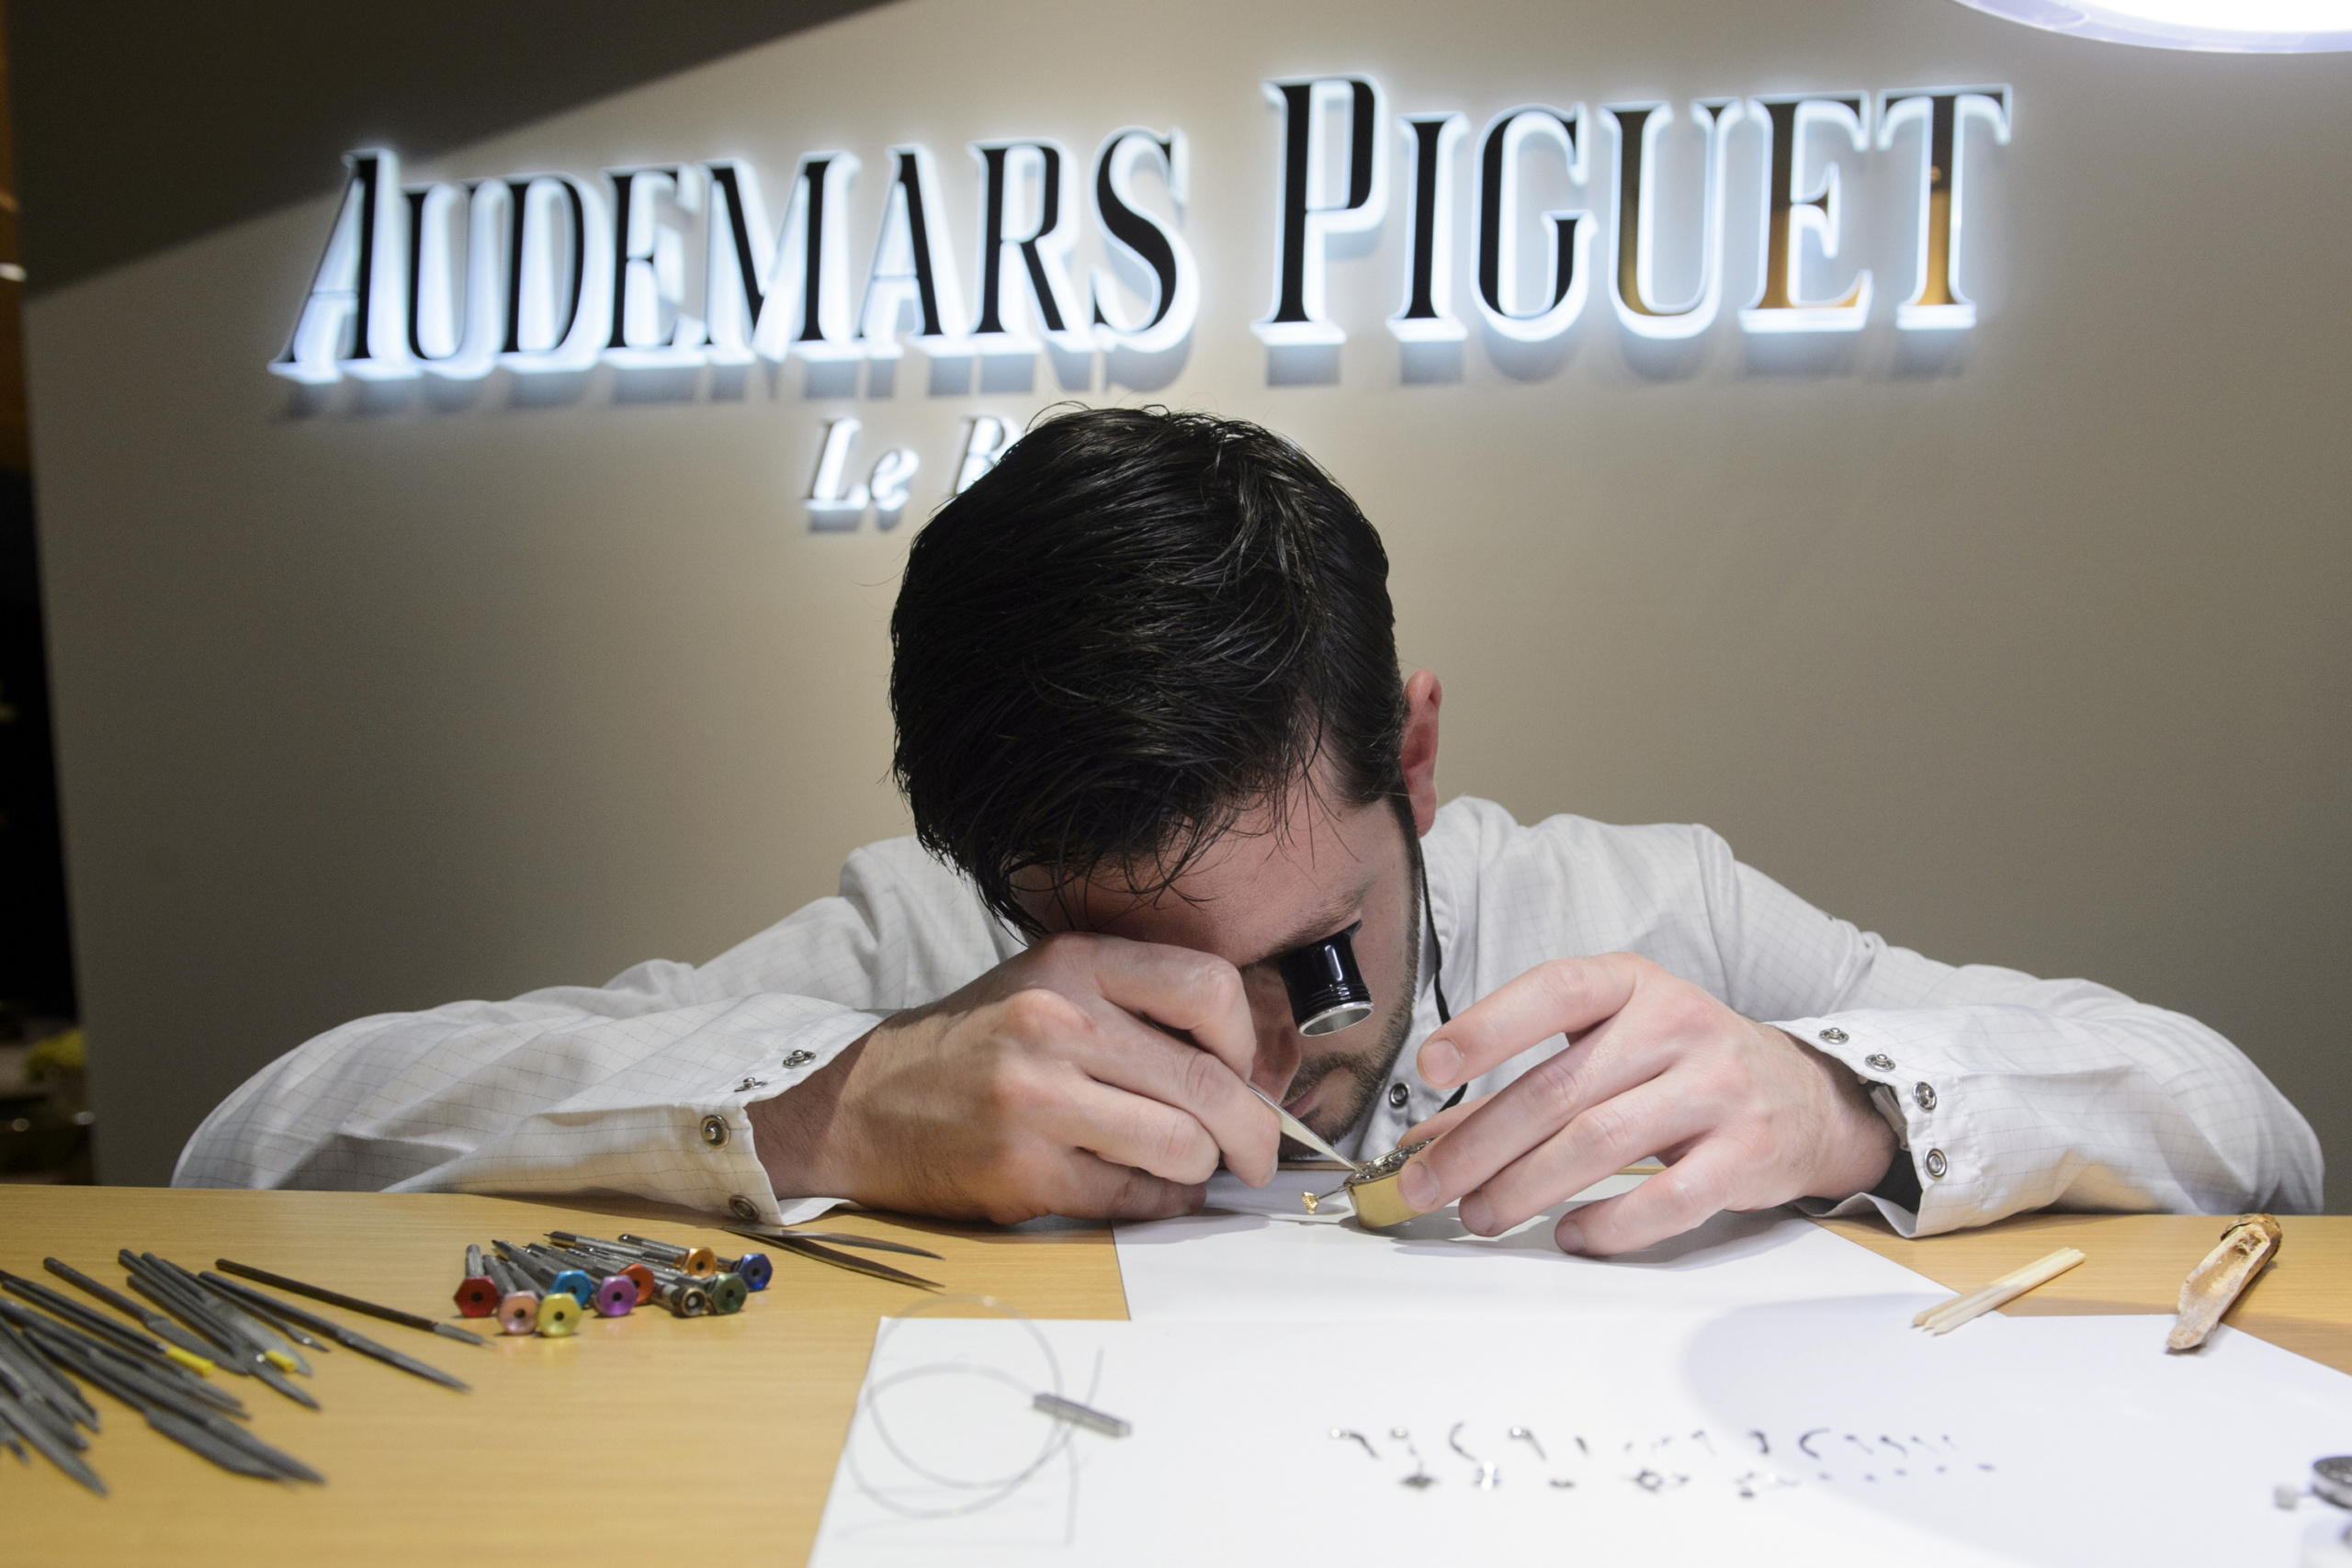 An employe of Swiss watchmaker Audemars Piguet checks a wristwatch during the opening day of the 'Salon International de la Haute Horlogerie' (SIHH), a professional fair in fine watchmaking, on January 18, 2016. / AFP / Richard Juilliart (Photo credit should read RICHARD JUILLIART/AFP/Getty Images)